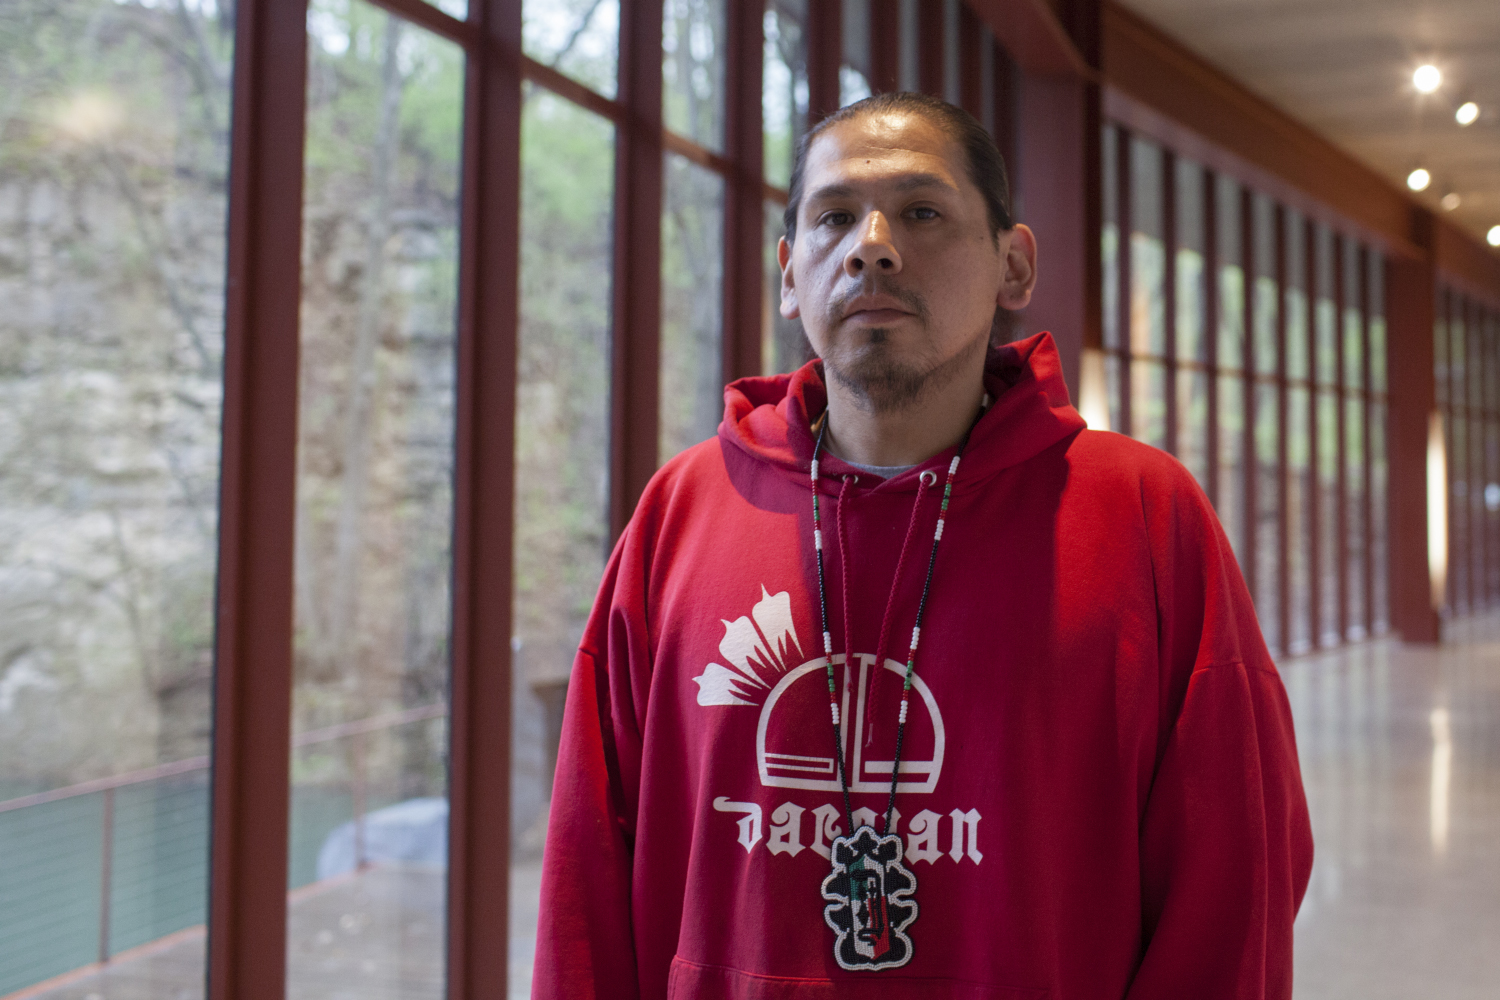 Artist and writer Dawson Davenport is pictured on Thursday, April 25, 2019. His art promotes the diversity within the Native American communities and works to encourage younger artists to continue their artwork.